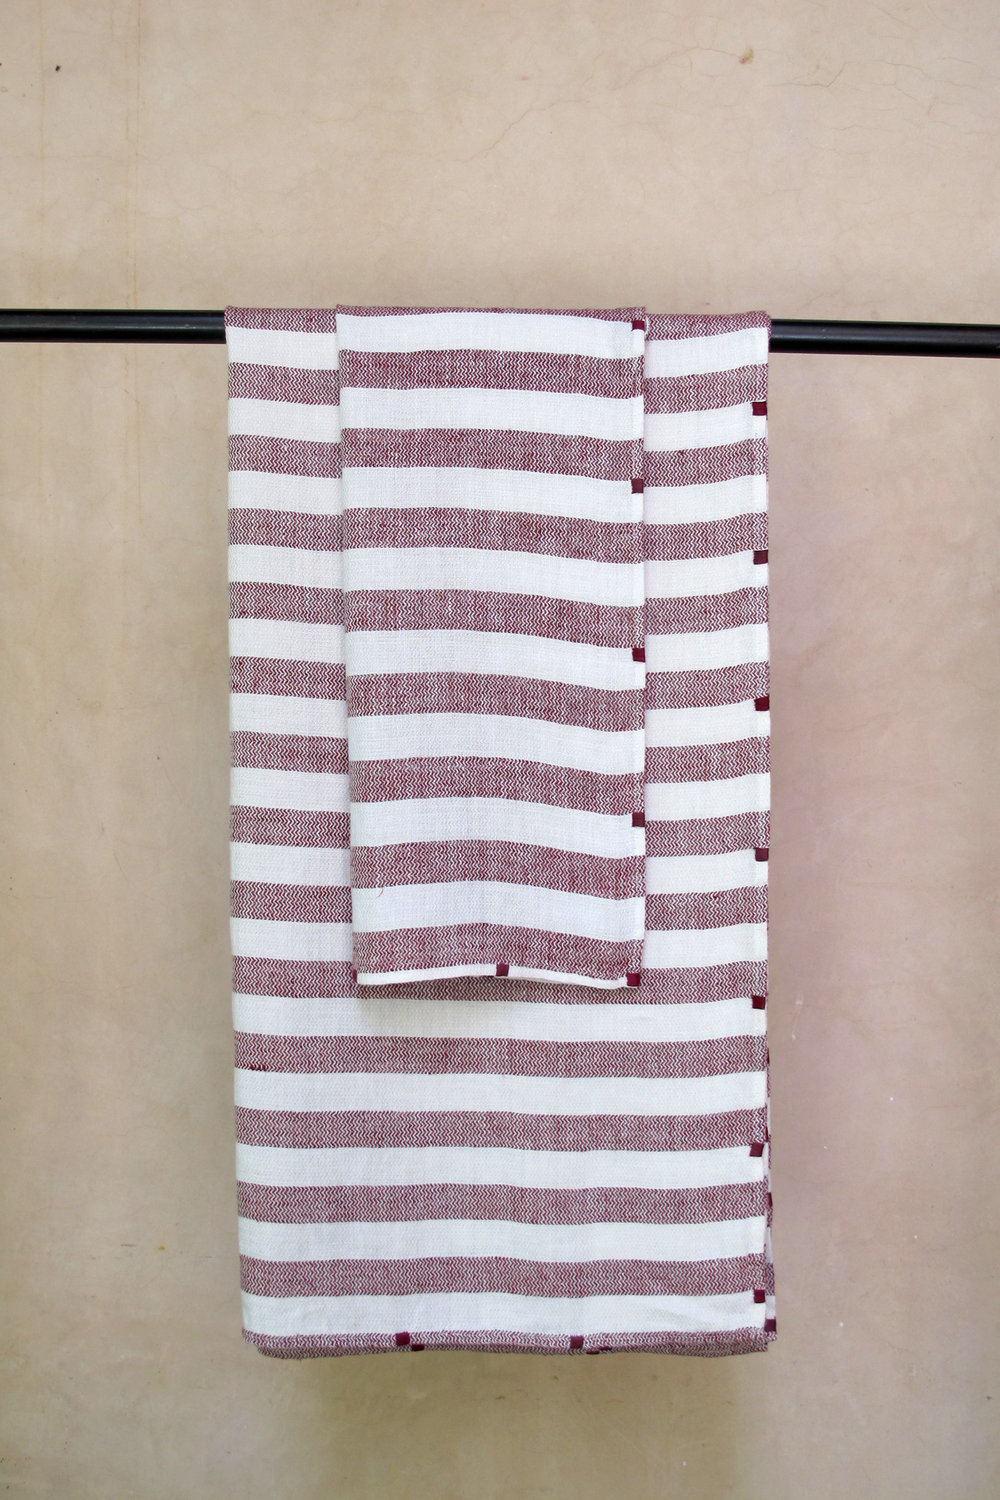 bathlinen_serviette_invitee_riga_bordeaux_8.jpg